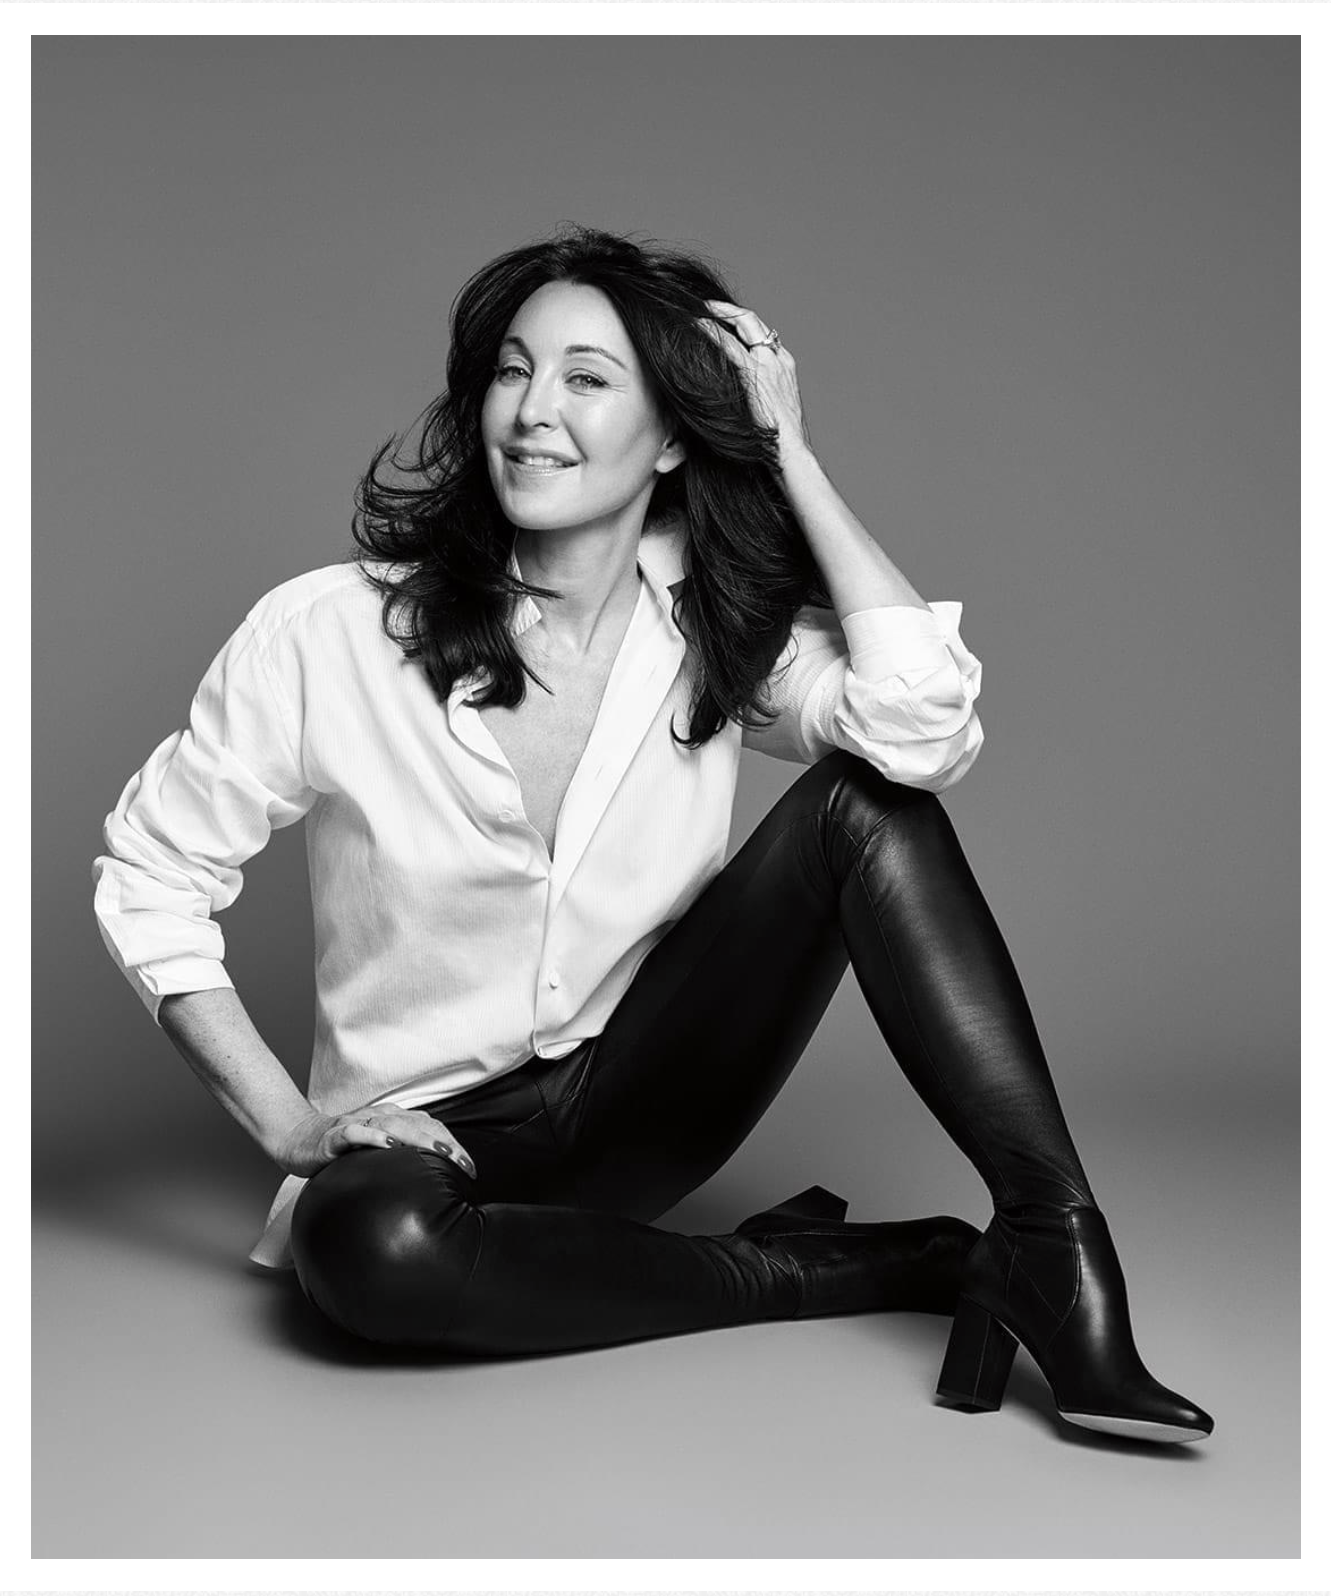 Tamara Mellon founder of Tamara Mellon shoes like Frontline heels which are a celebrity favorite